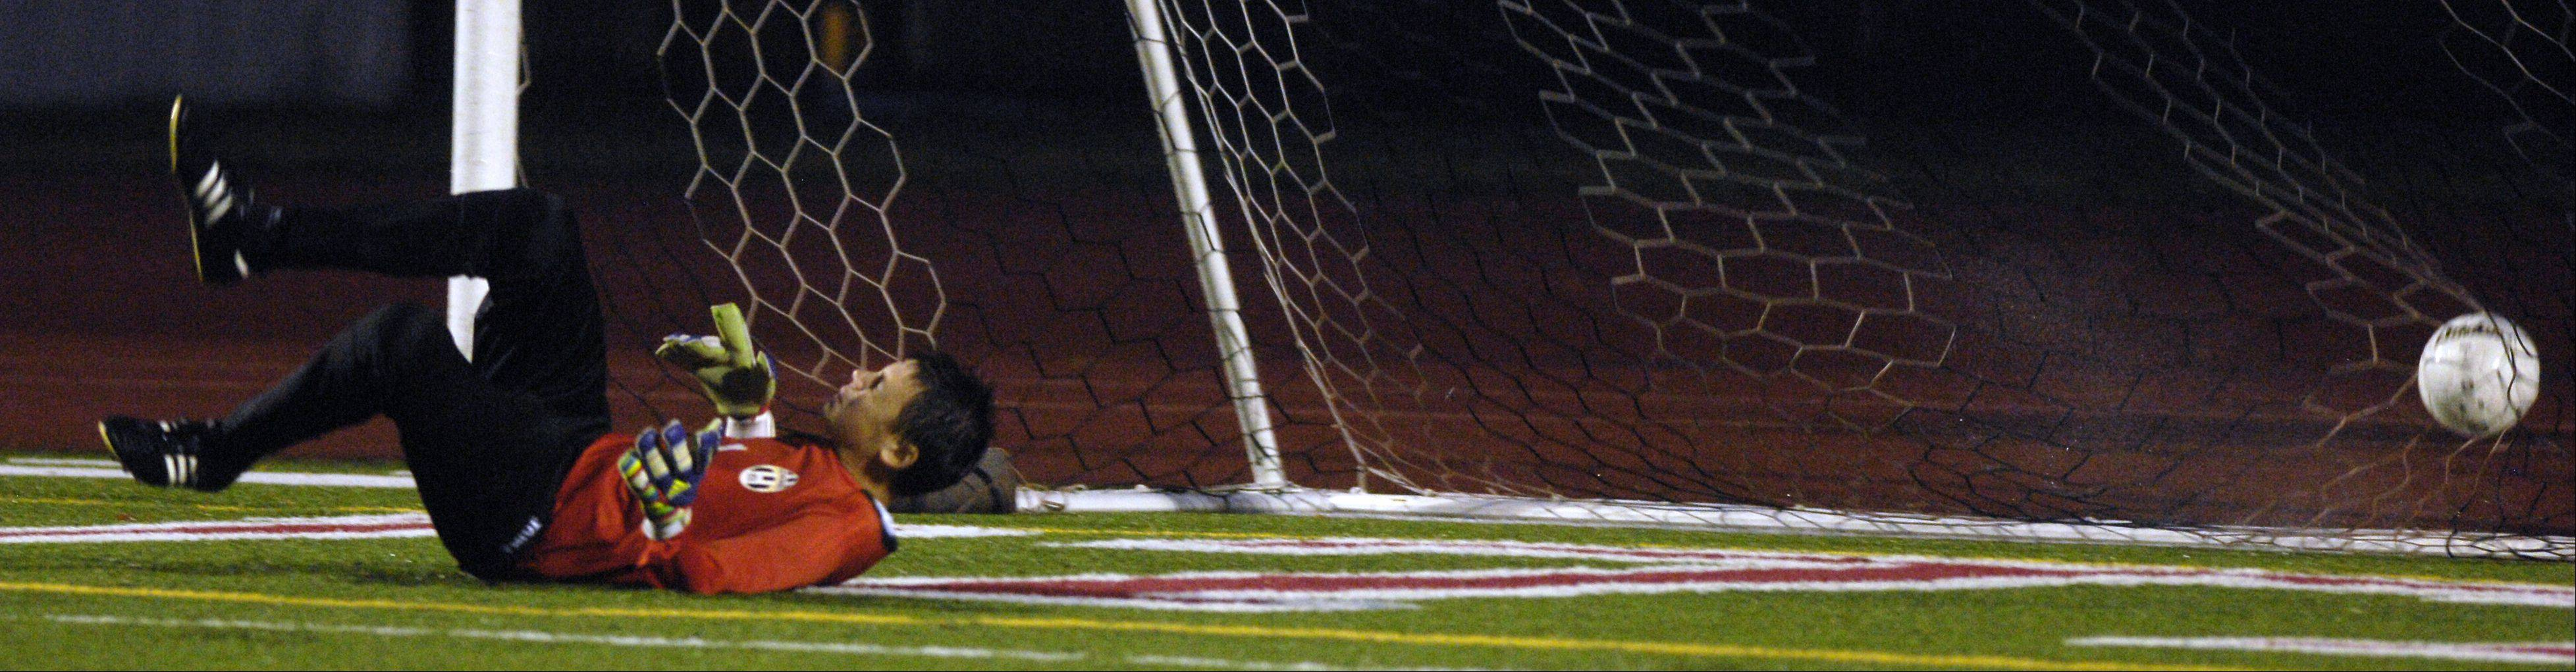 Goalkeeper Duncan Turnbull of Geneva allows a goal during his team's 7-0 loss to Naperville Central, in the boys soccer regional semifinals in Naperville, Wednesday.